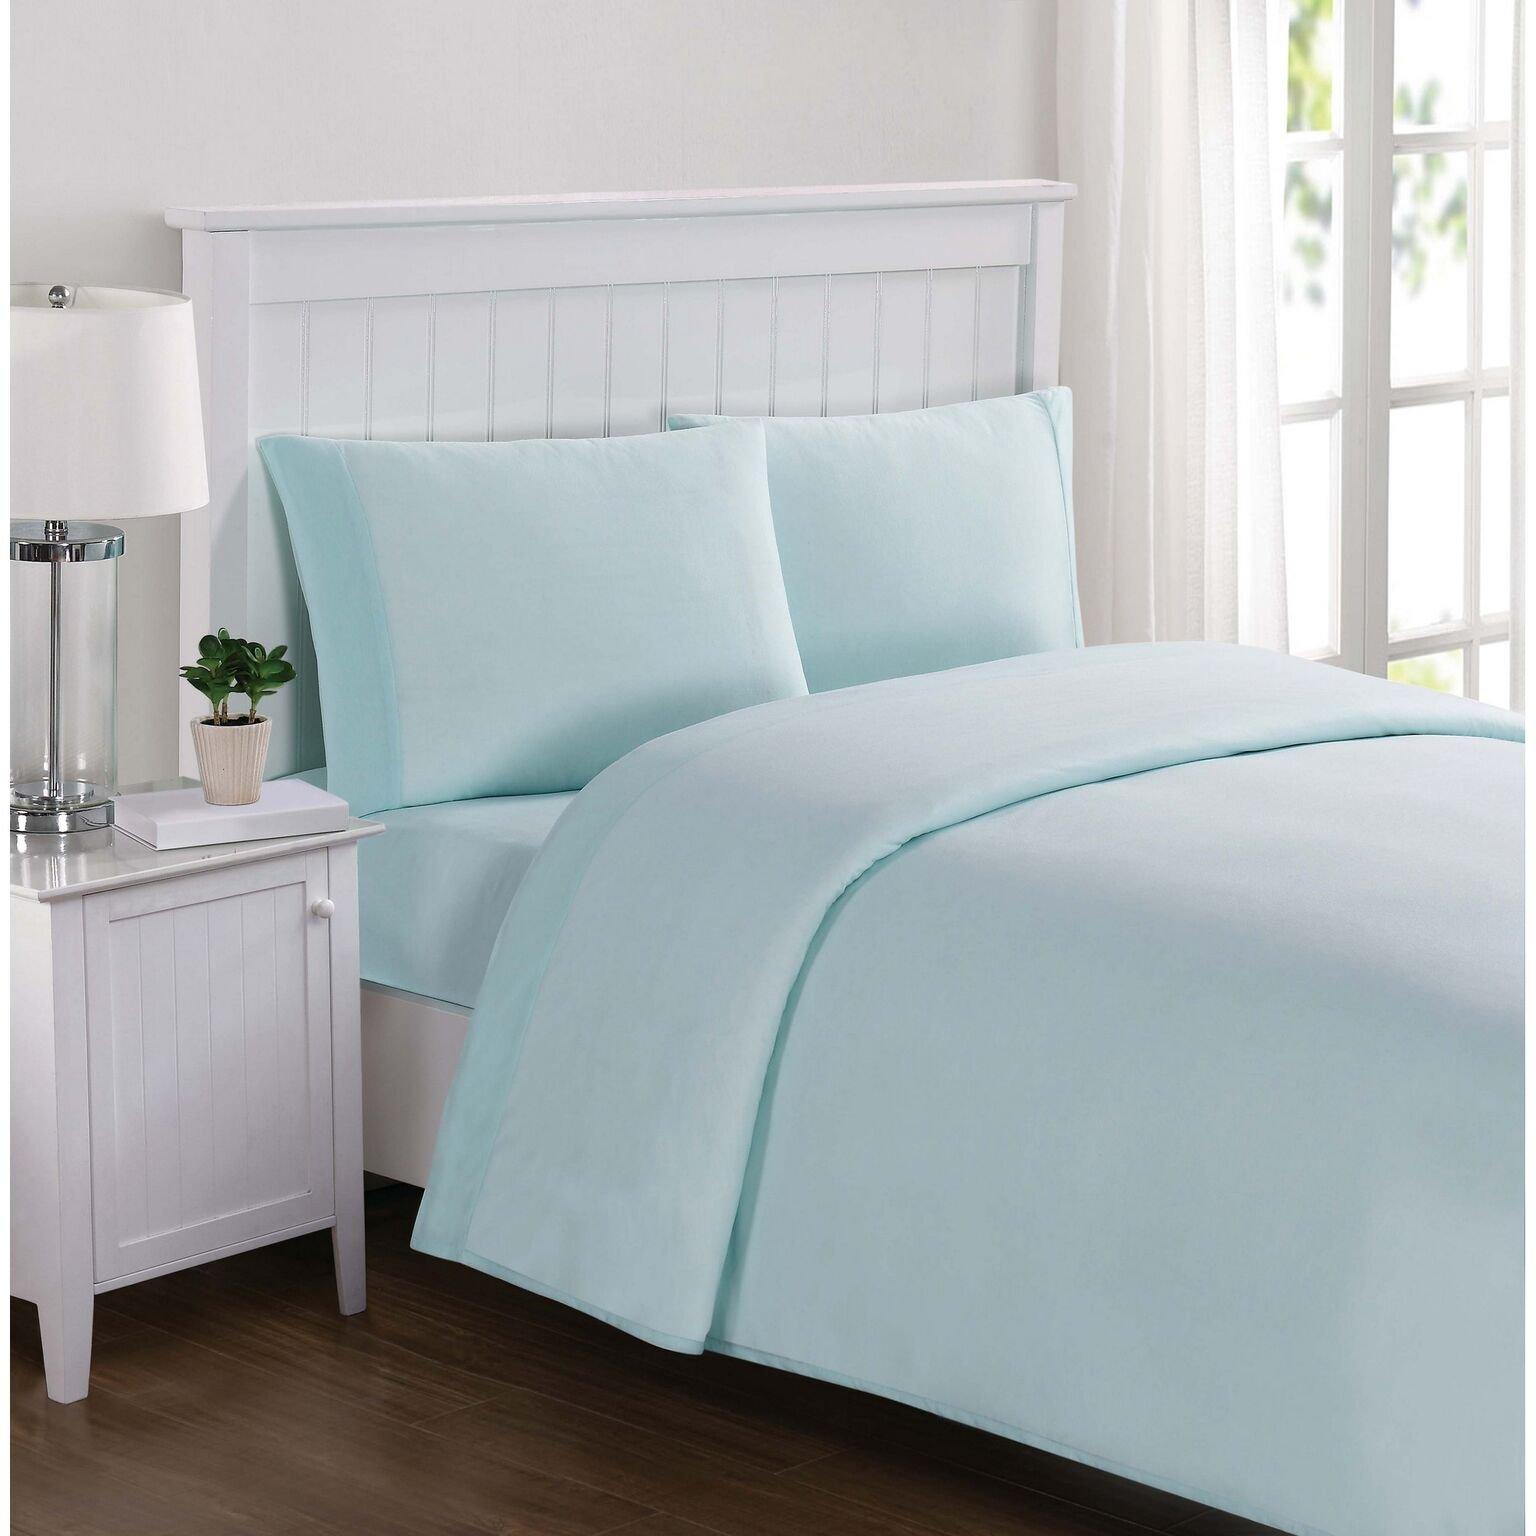 Truly Soft Solid Jersey Aqua Twin Sheet Set